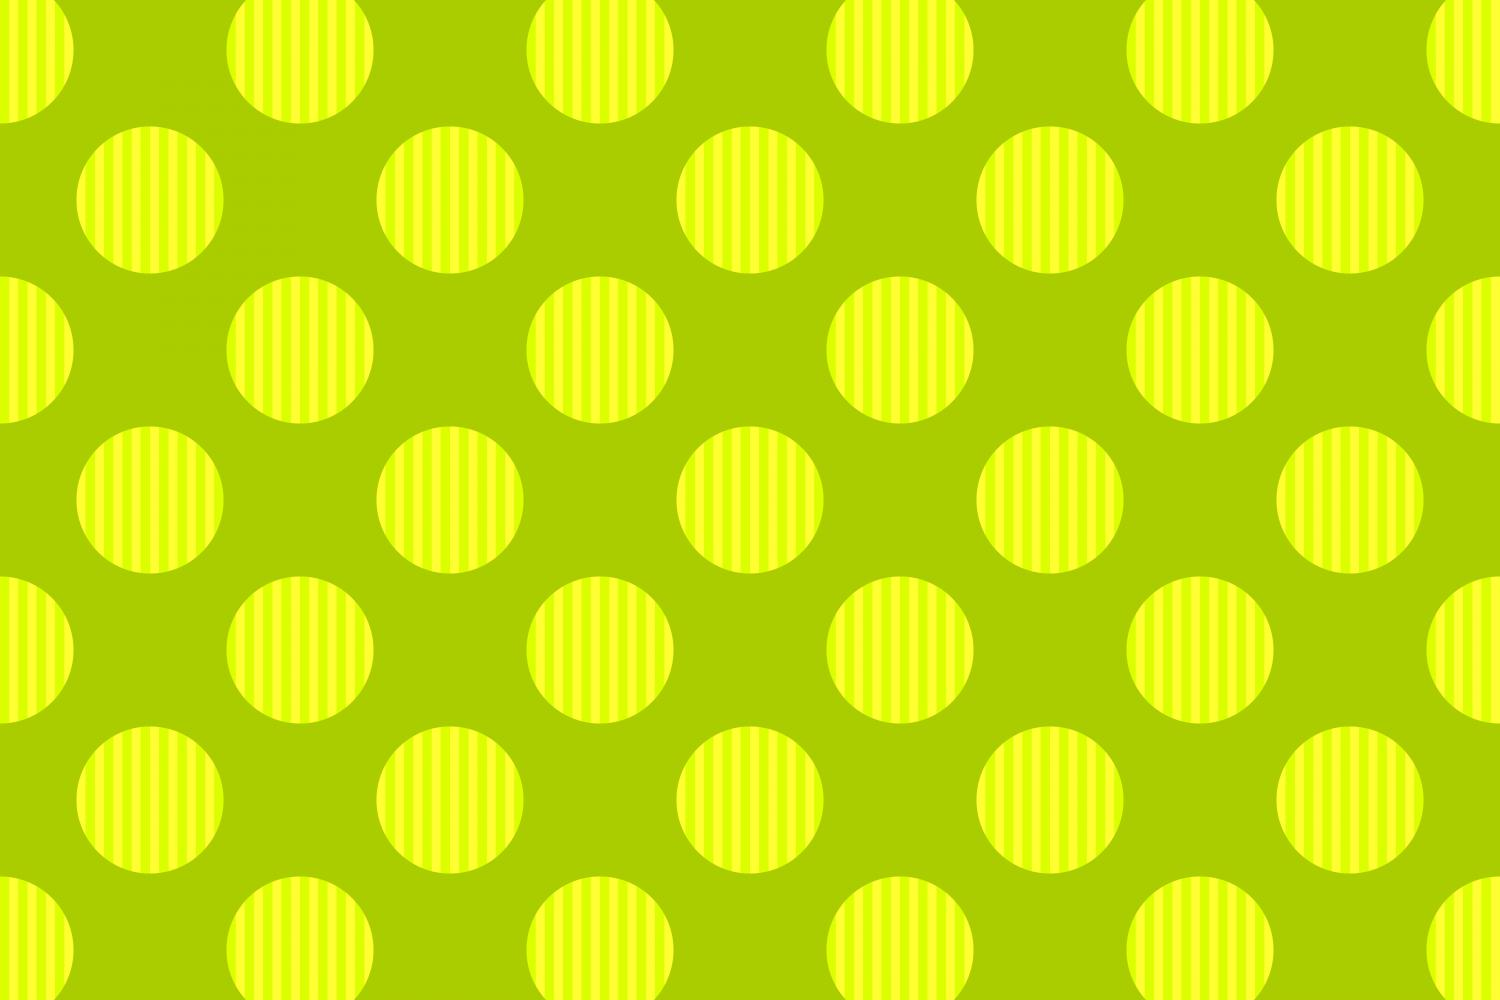 Download Free Seamless Threetone Pattern Graphic By Davidzydd Creative Fabrica for Cricut Explore, Silhouette and other cutting machines.